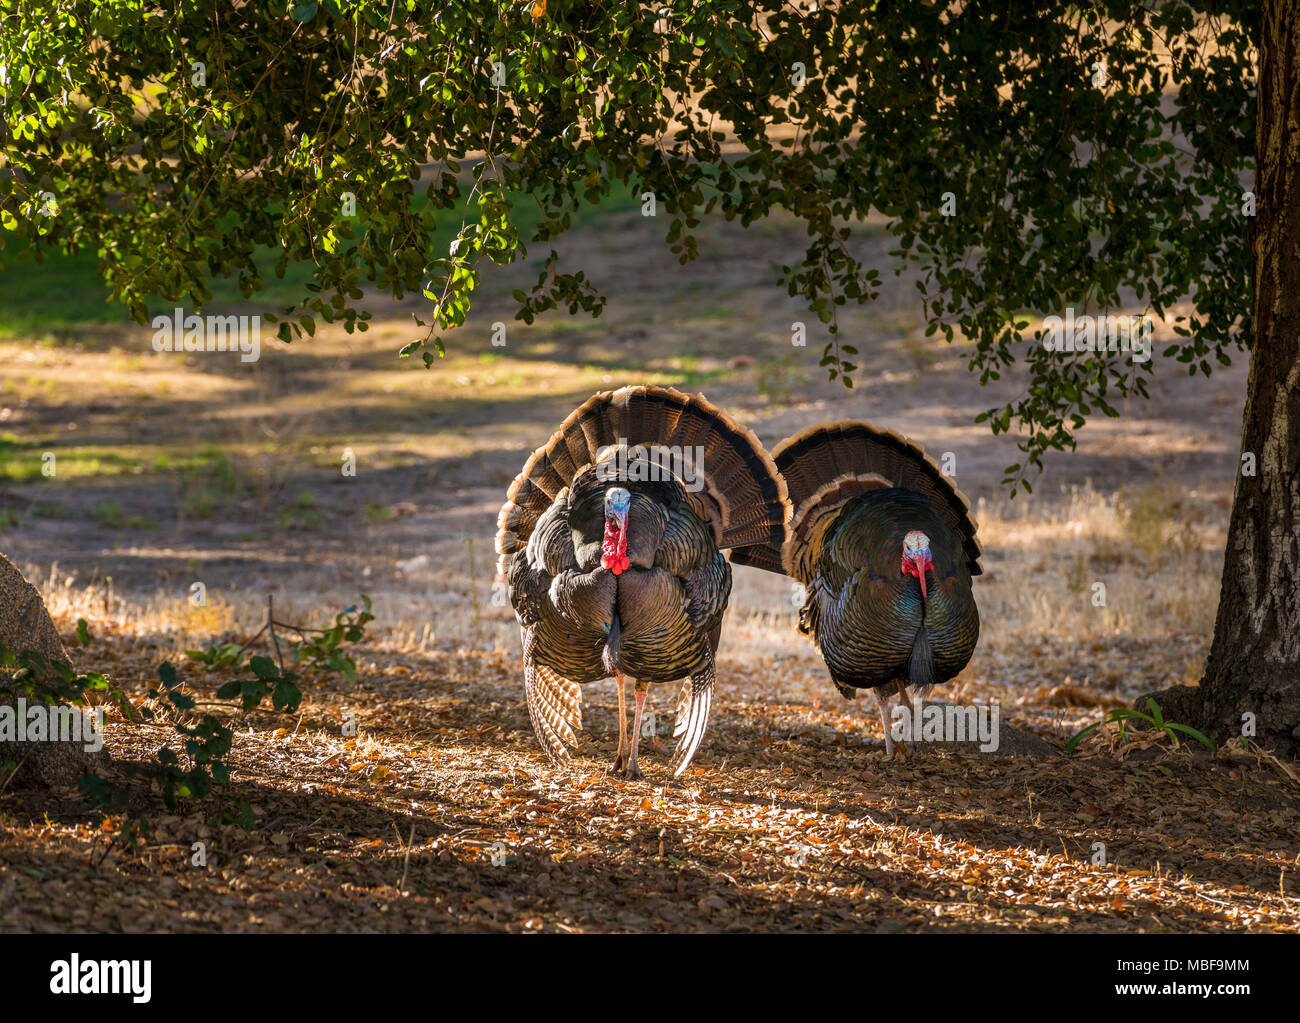 Male wild turkeys (Meleagris gallopavo) displaying and strutting with tail feathers in fan outside, USA - Stock Image